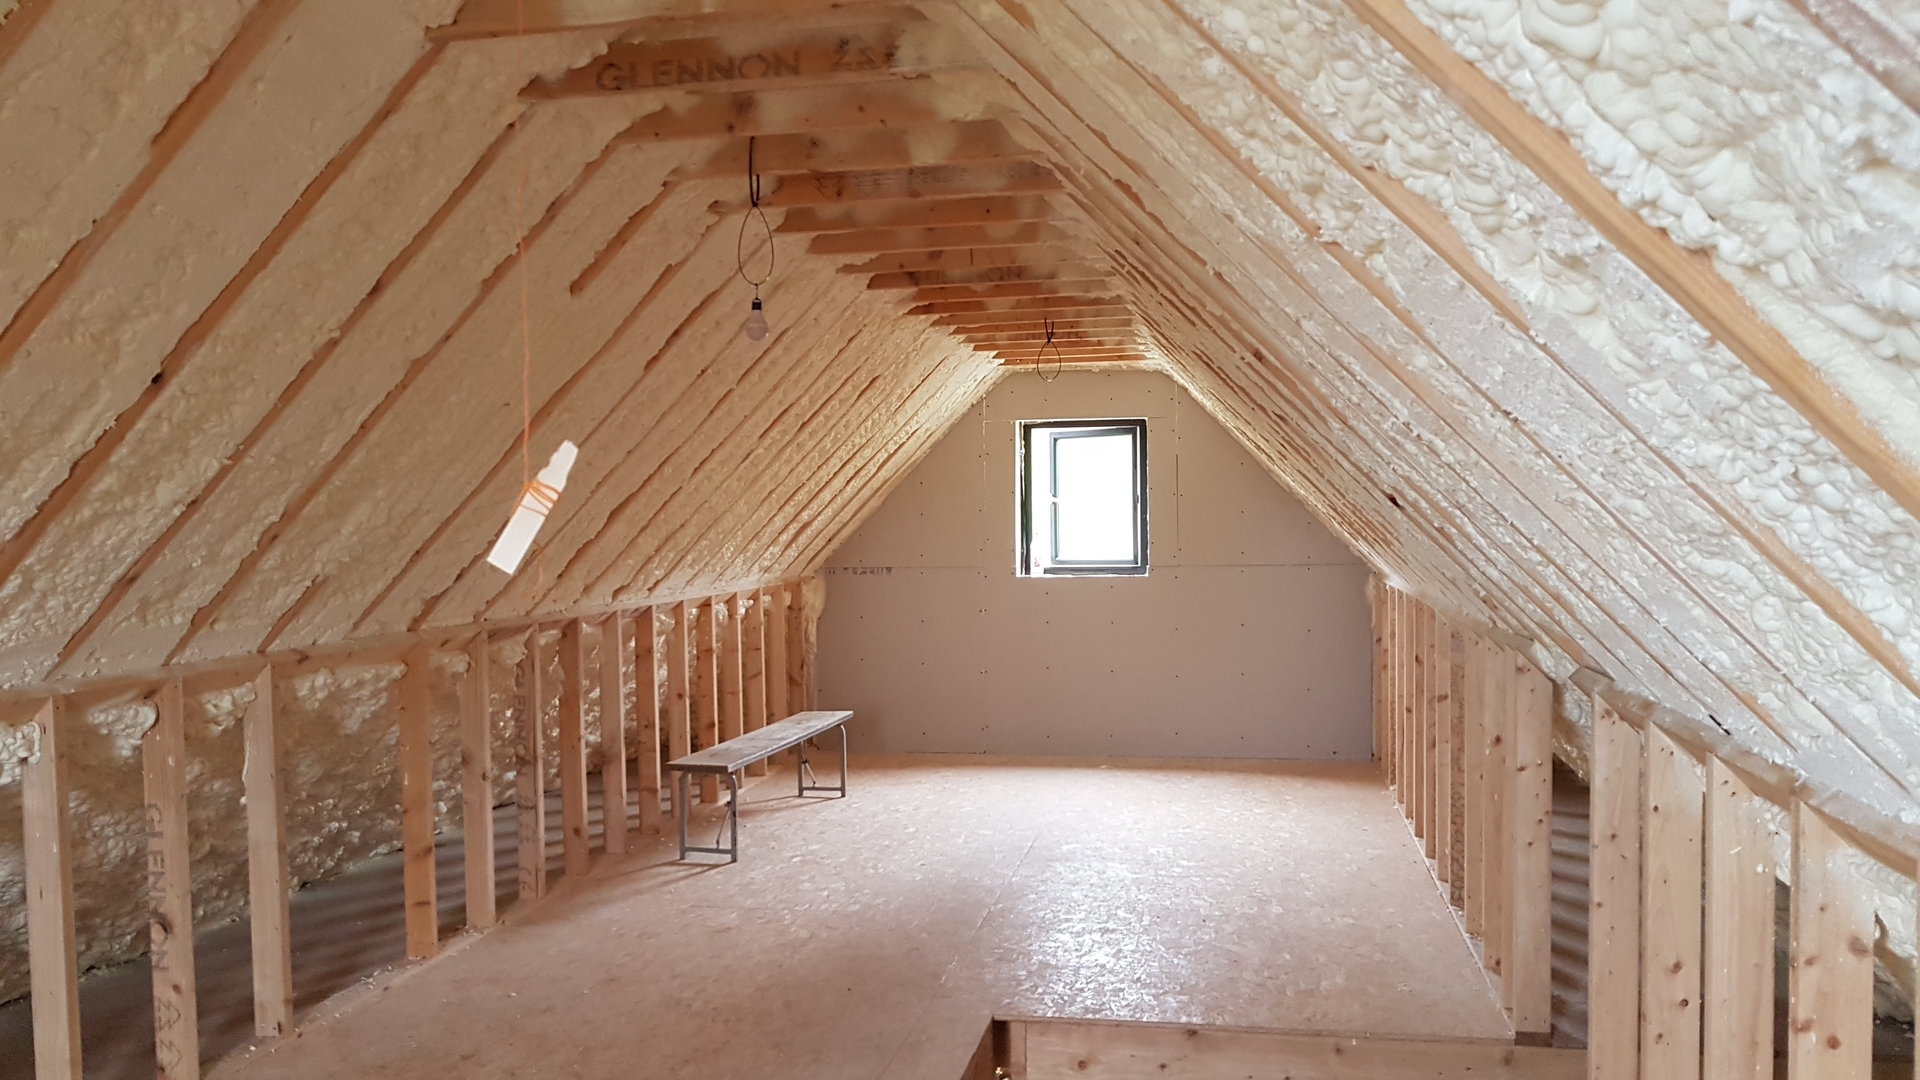 Attic Insulation Experts Spray Foam Services